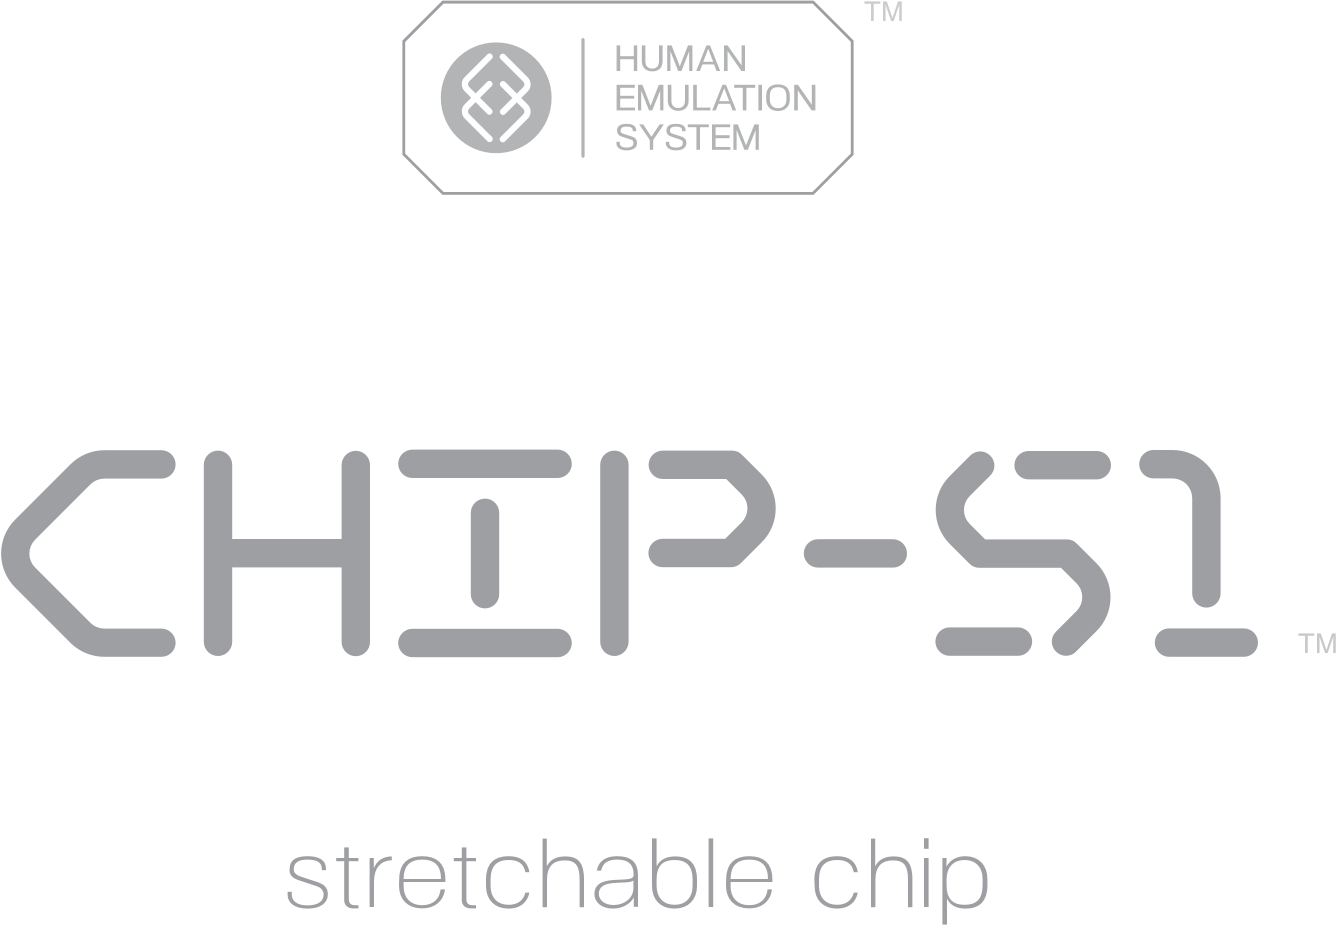 01_Official-Branding-Gray_Chip-S1-1.png